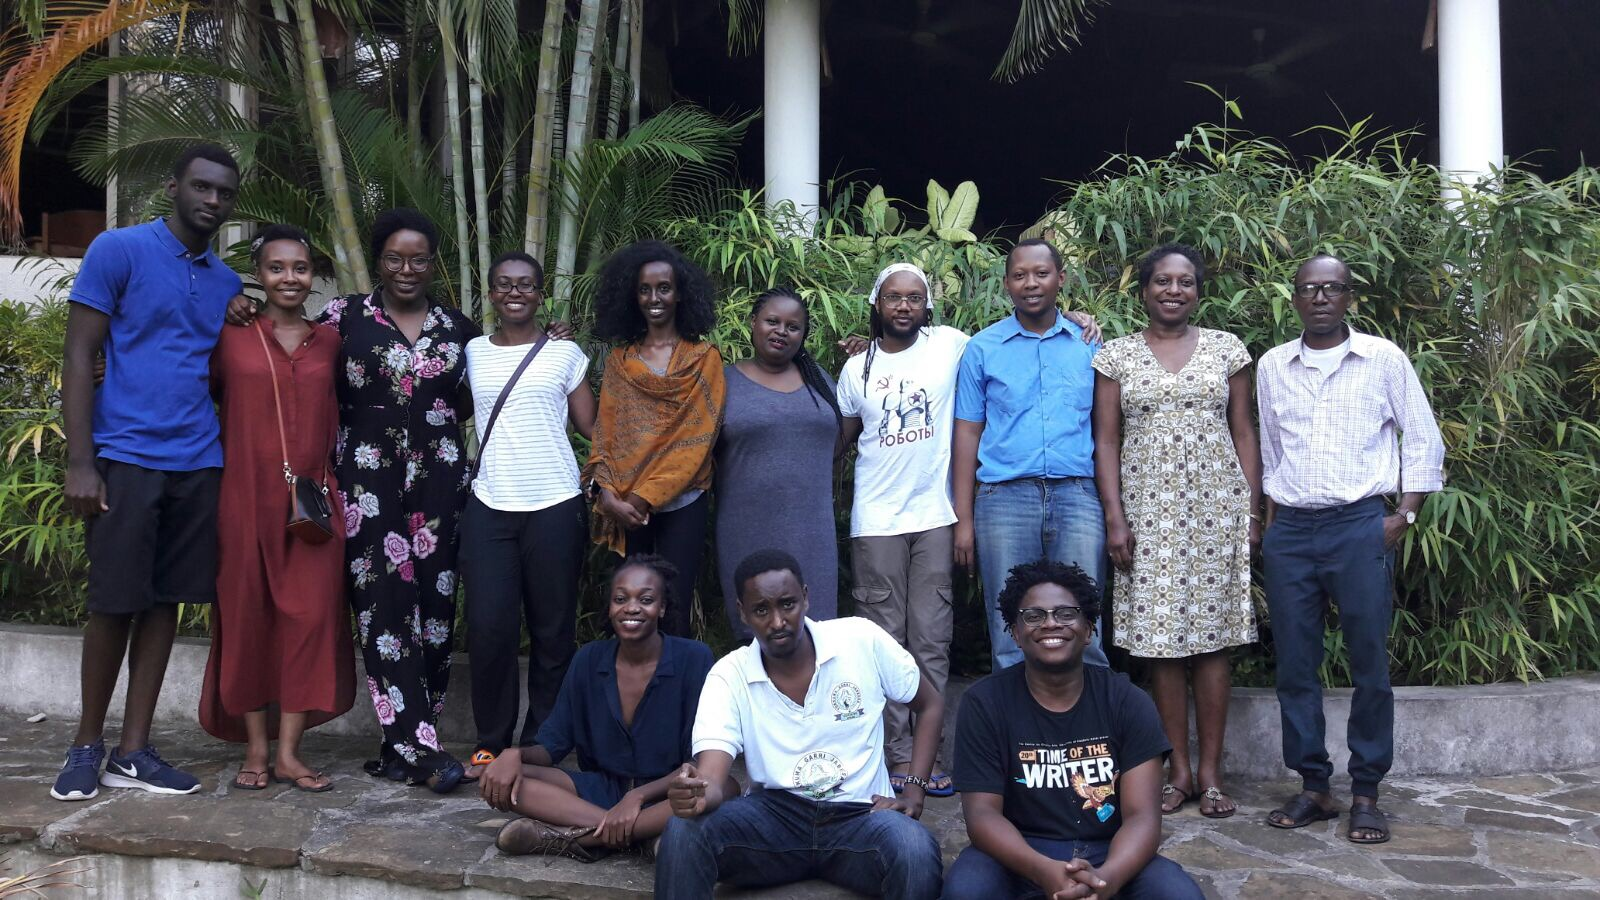 Participants for the 2017 Caine Prize Workshop in Bagamoyo, Tanzania. Top row: Daniel Rafiki (Rwanda), Darla Rudakubana (Rwanda), Lesley Nneka Arimah (Nigeria), Cheryl Ntumy (Botswana/Ghana), Agazit Abate (Ethiopia), Esther Karin Mngodo (Tanzania), Tendai Huchu (Zimbabwe), Zaka Riwa (Tanzania), Elise Dillsworth (workshop facilitator) and Mohammed Naseehu Ali (workshop facilitator). Bottom row: Lydia Kasese (Tanzania), Abdul Adan (Somalia/Kenya) and Lidudumalingani (South Africa)